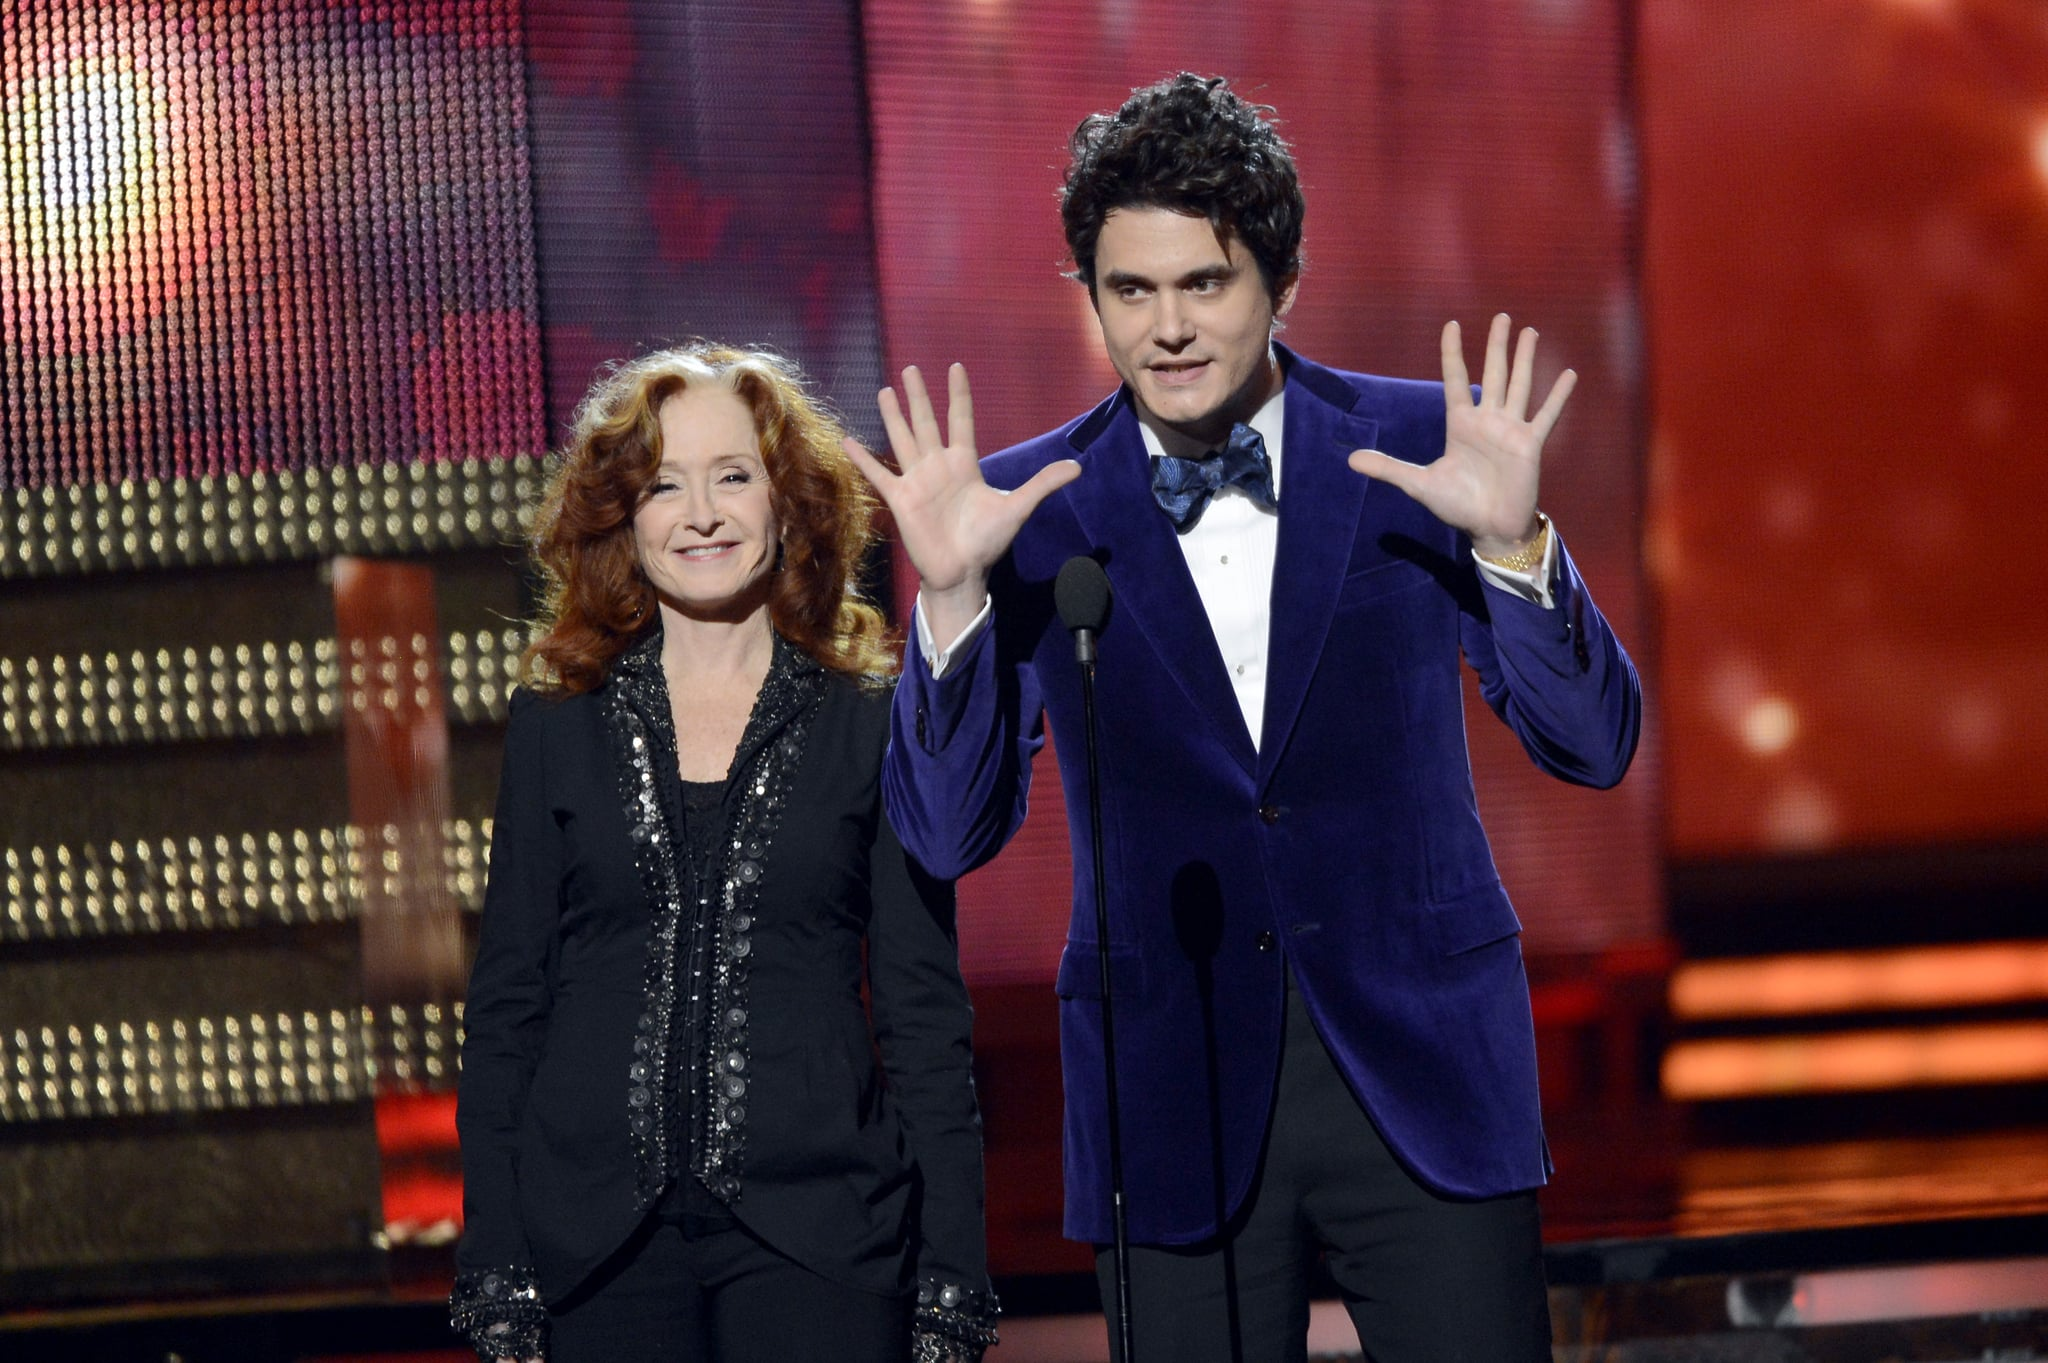 Bonnie Raitt and John Mayer presented together at the Grammys.